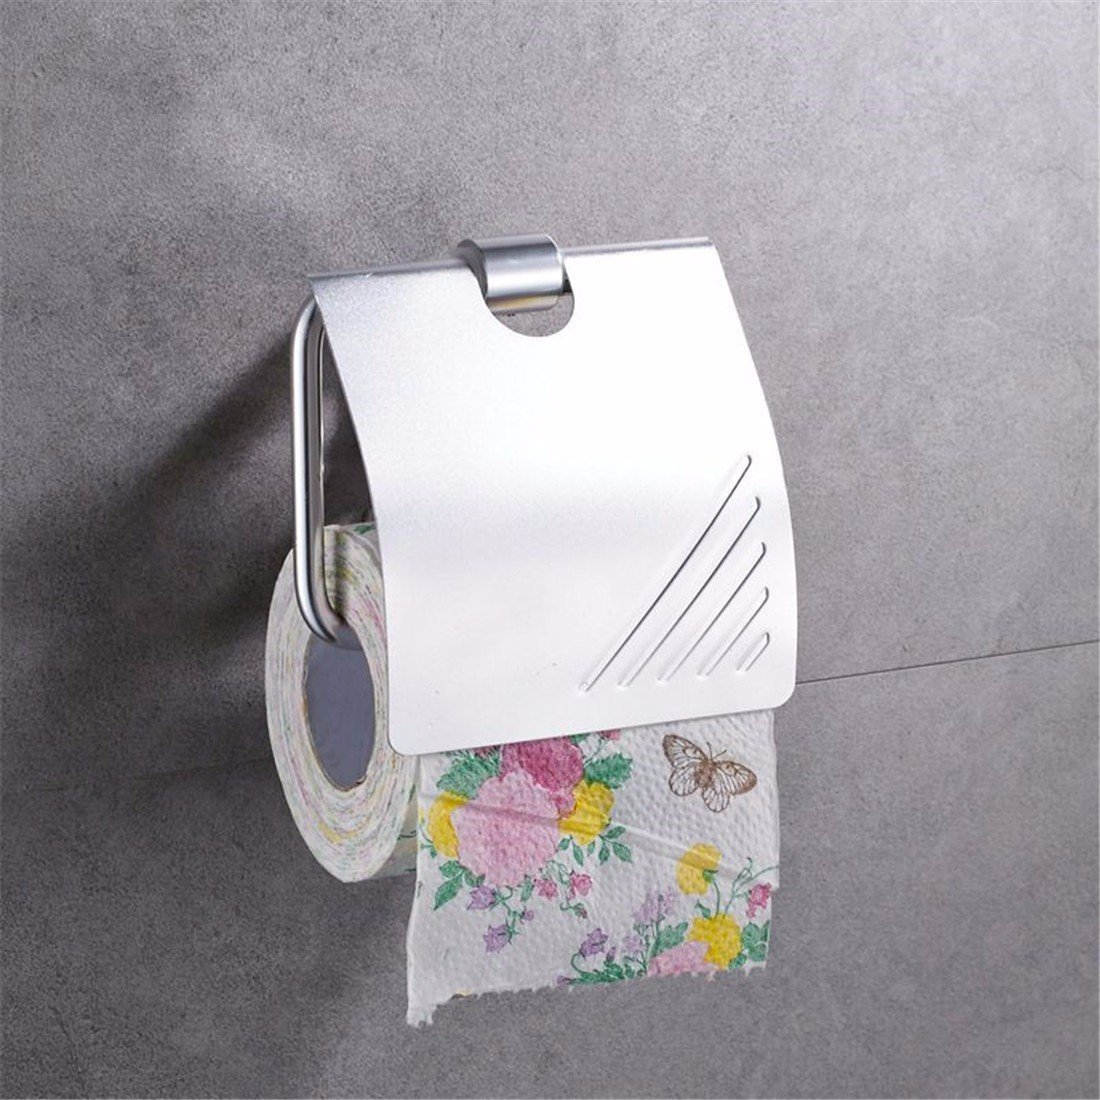 FACAIG The aluminum works light toilet paper holder bathroom accessories set